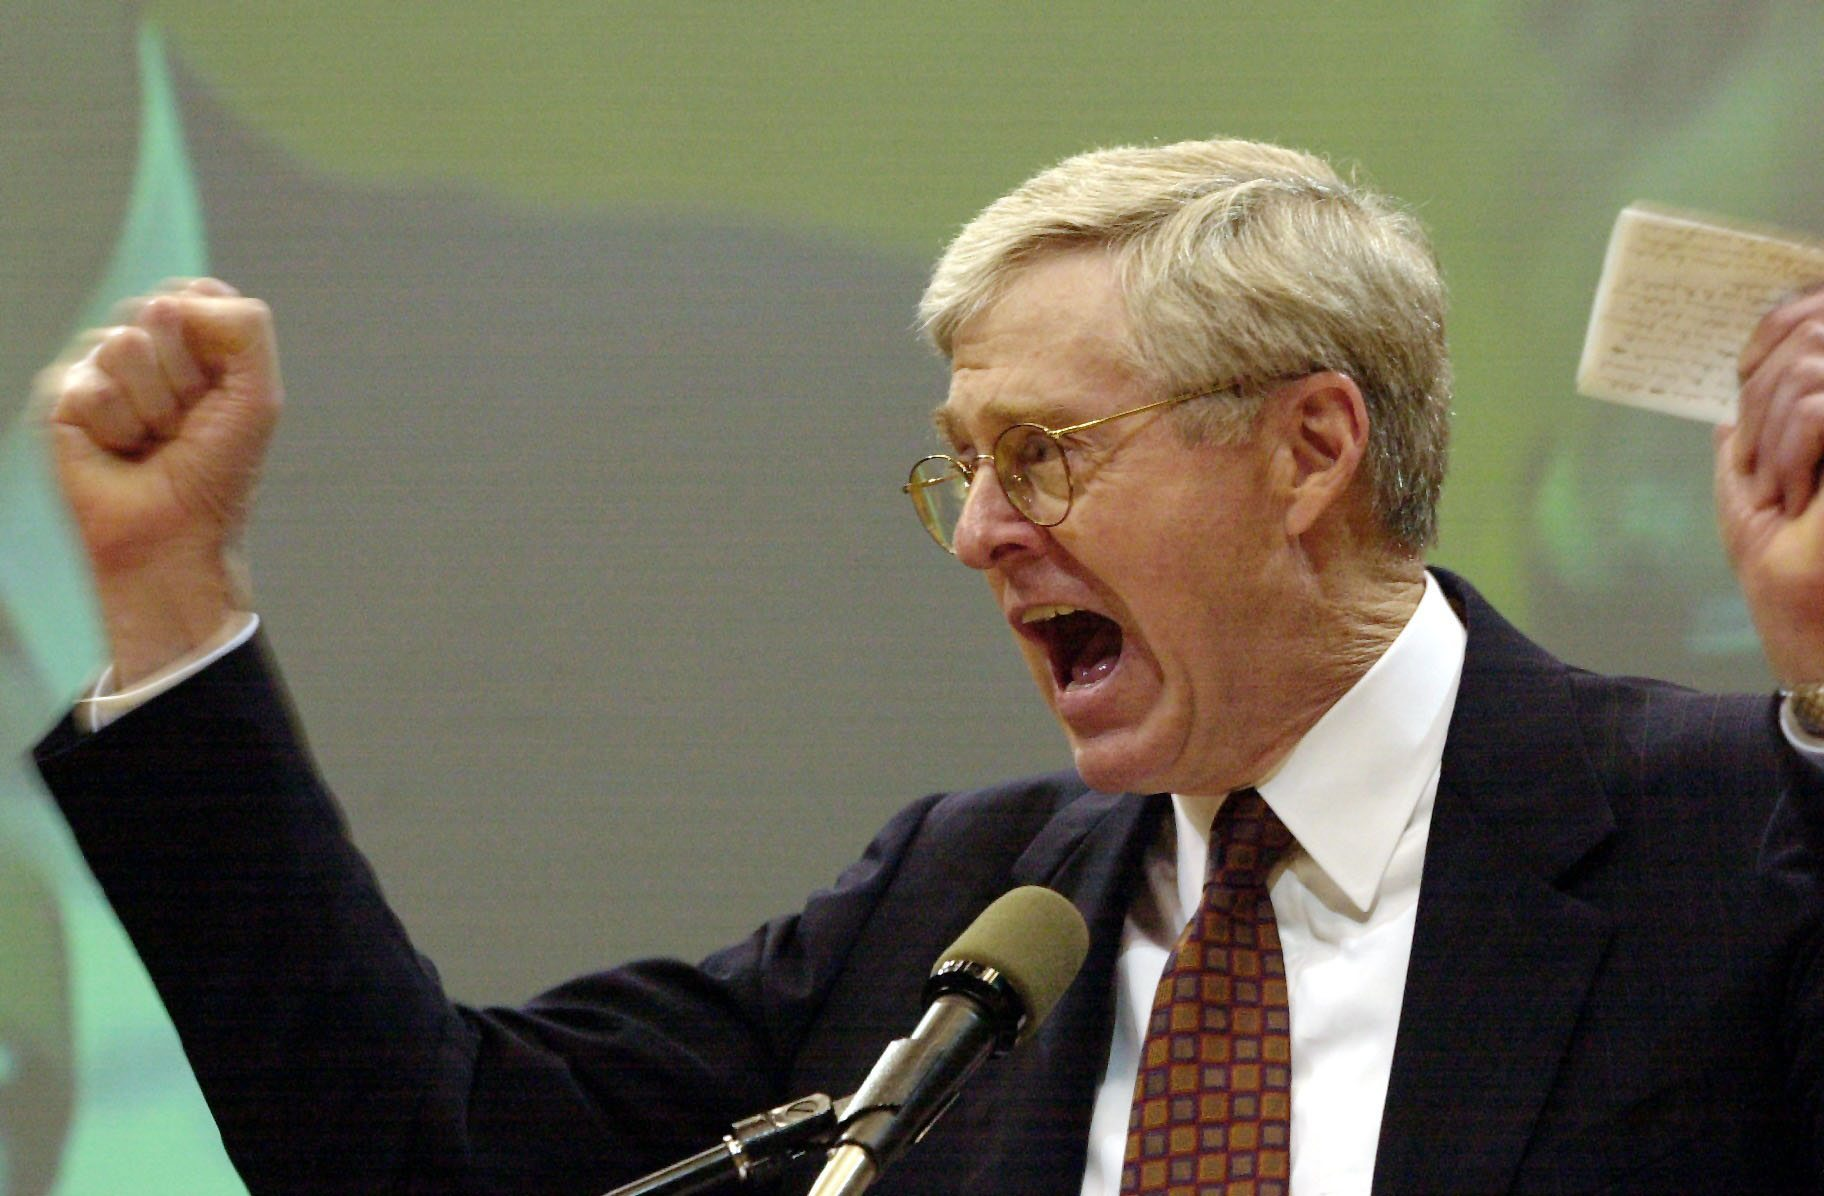 Charles g koch greenpeace usa for David charles koch